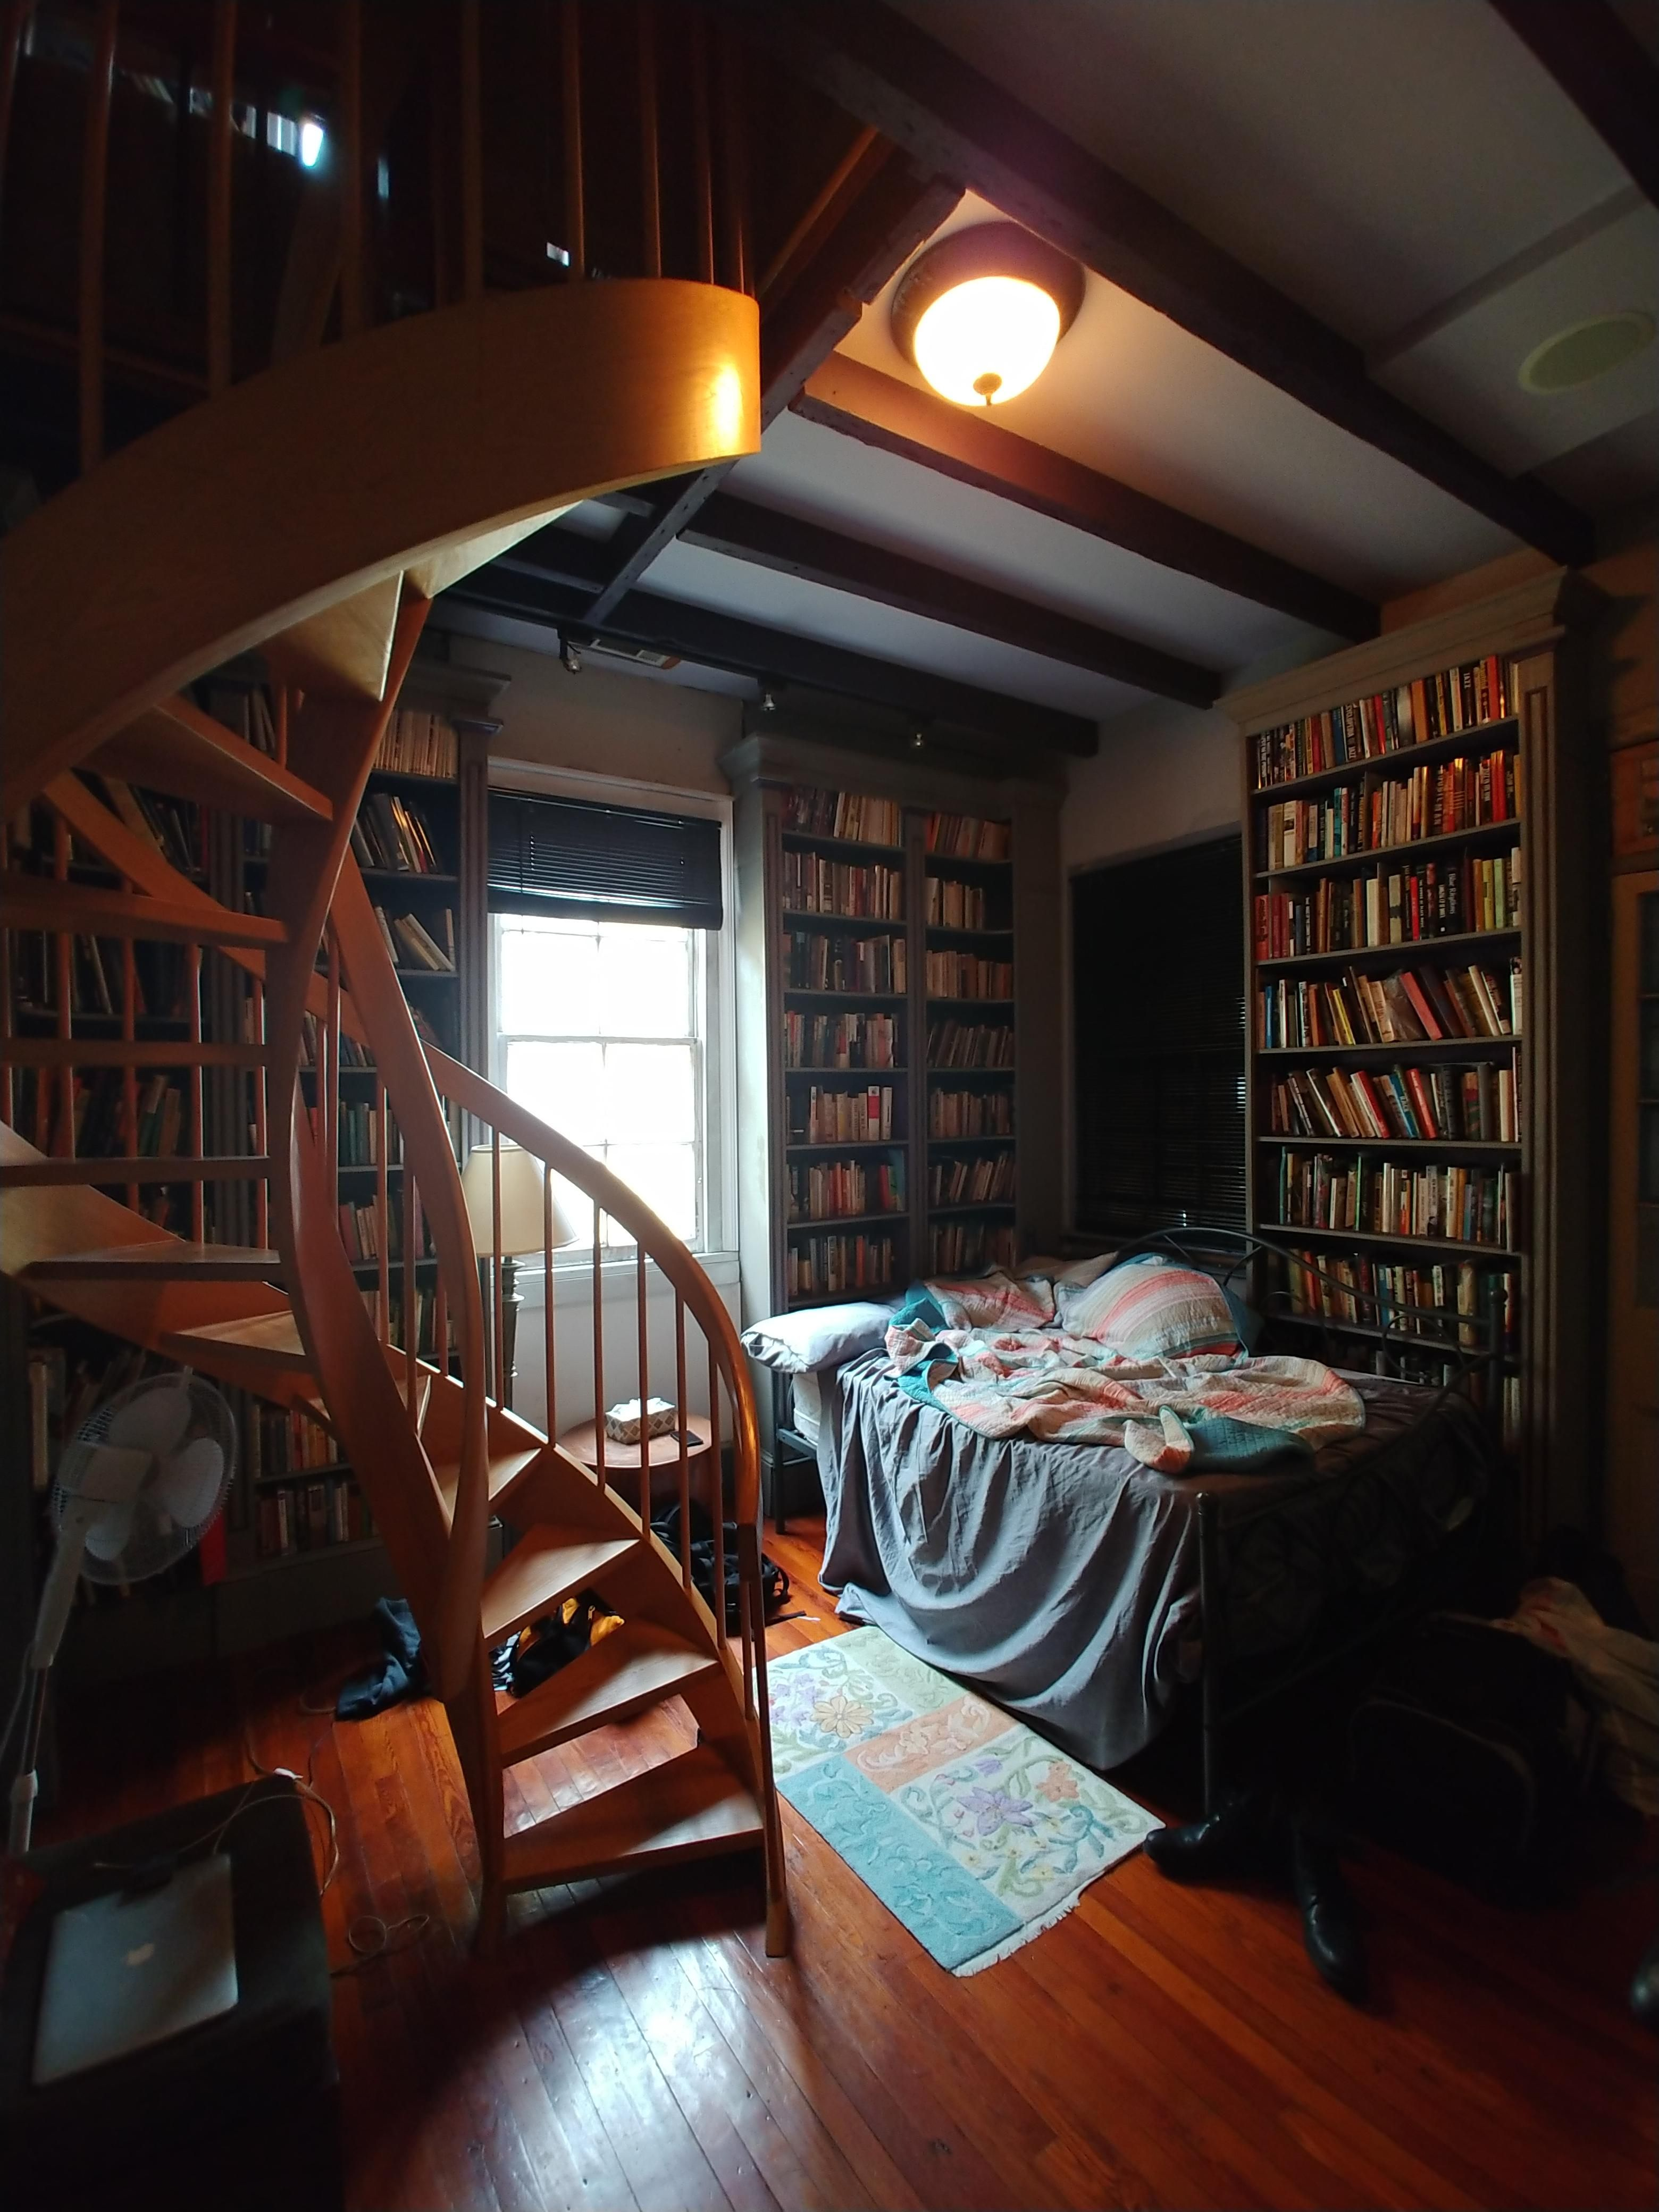 Library Room Ideas For Small Spaces: Library Bedroom, Comfy Bedroom